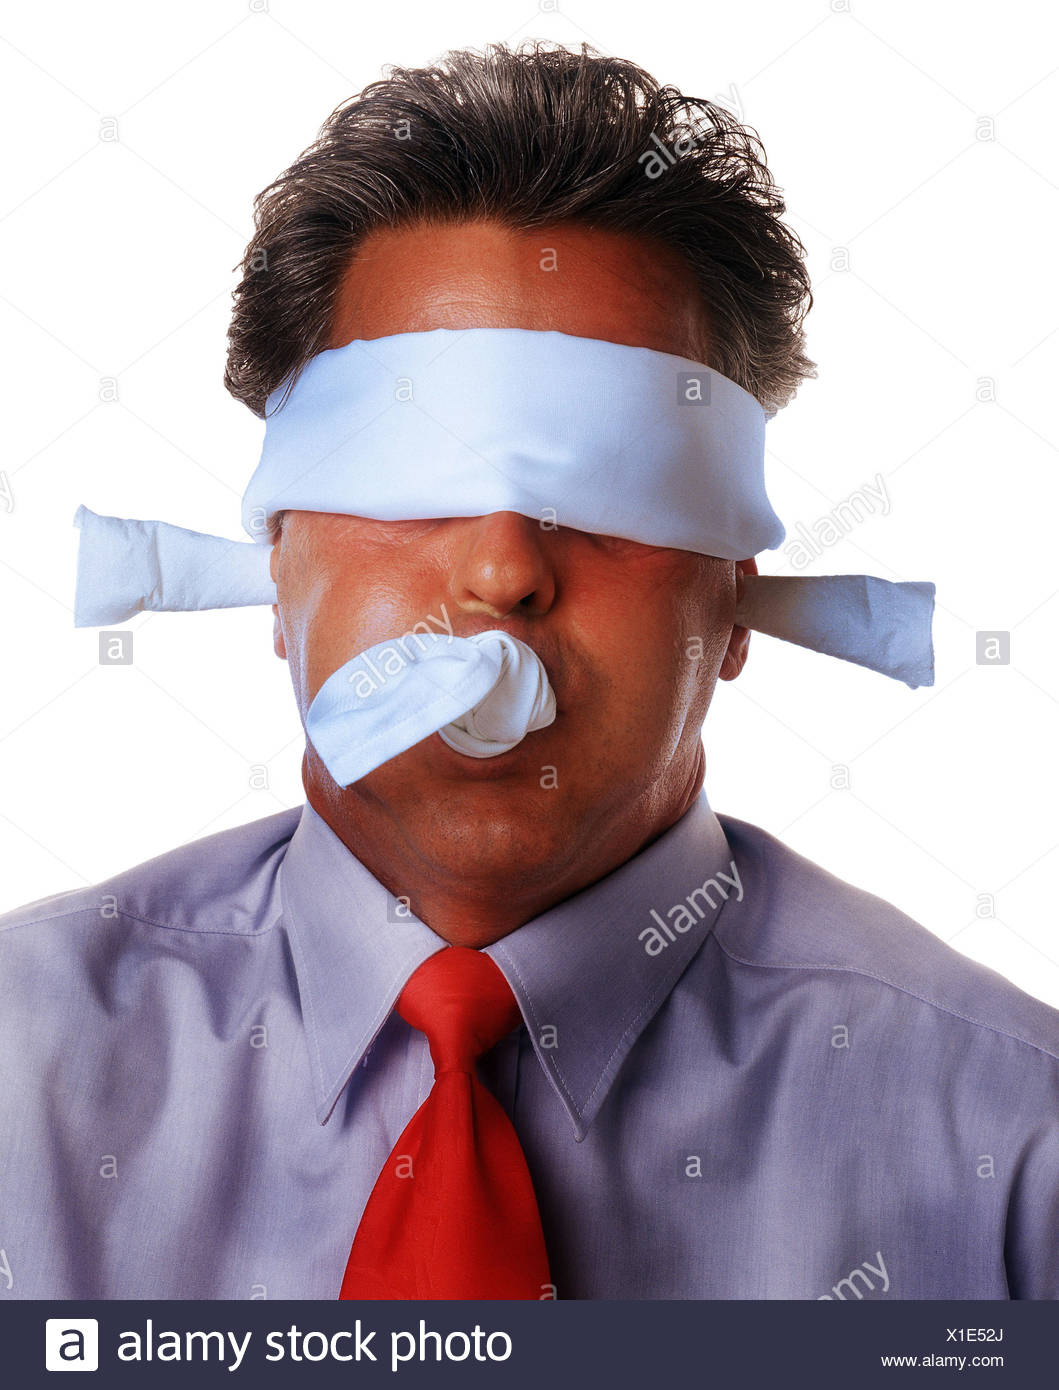 Businessman, toggle, blindfold, 'nothing say', hear 'nothing', 'nothing see to speak', portrait, Men, man, cloth, node, criminal activity, hostage, dumbfounded, quiet, silence, hide, trapped, eyes, online, earplug, studio, cut out - Stock Image